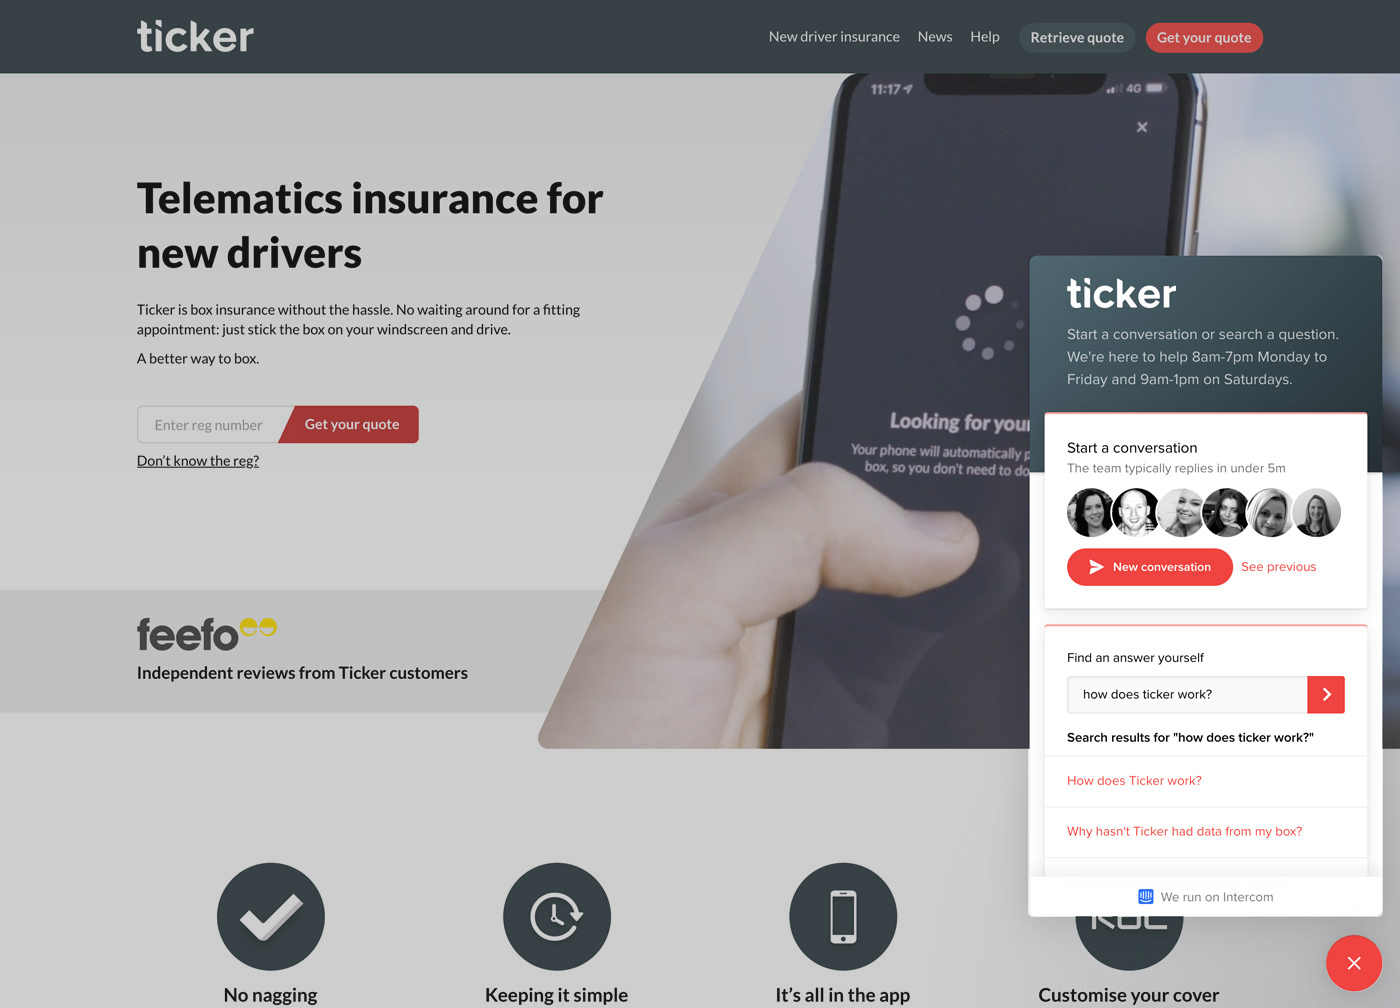 Intercom chat support for Ticker new driver insurance